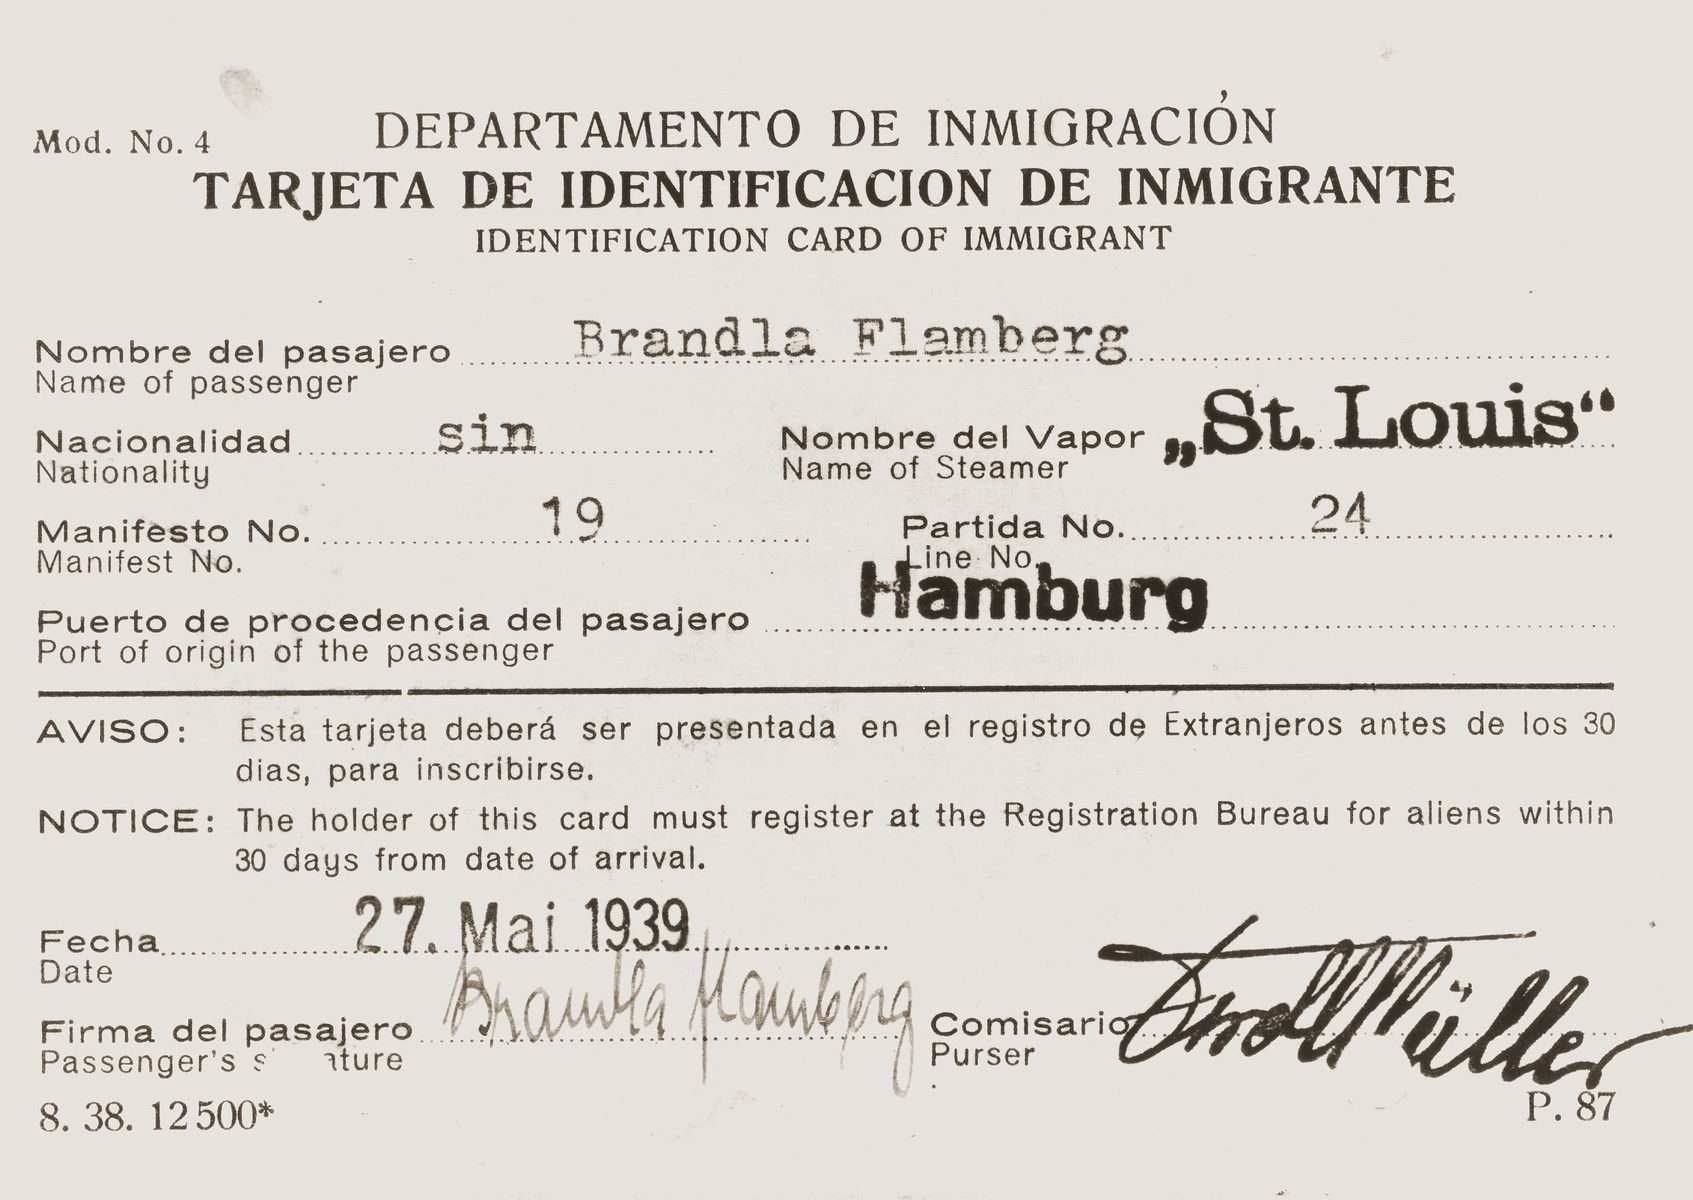 Immigration identification card issued by the Cuban government to St. Louis passenger Brandla Flamberg in advance of her voyage.